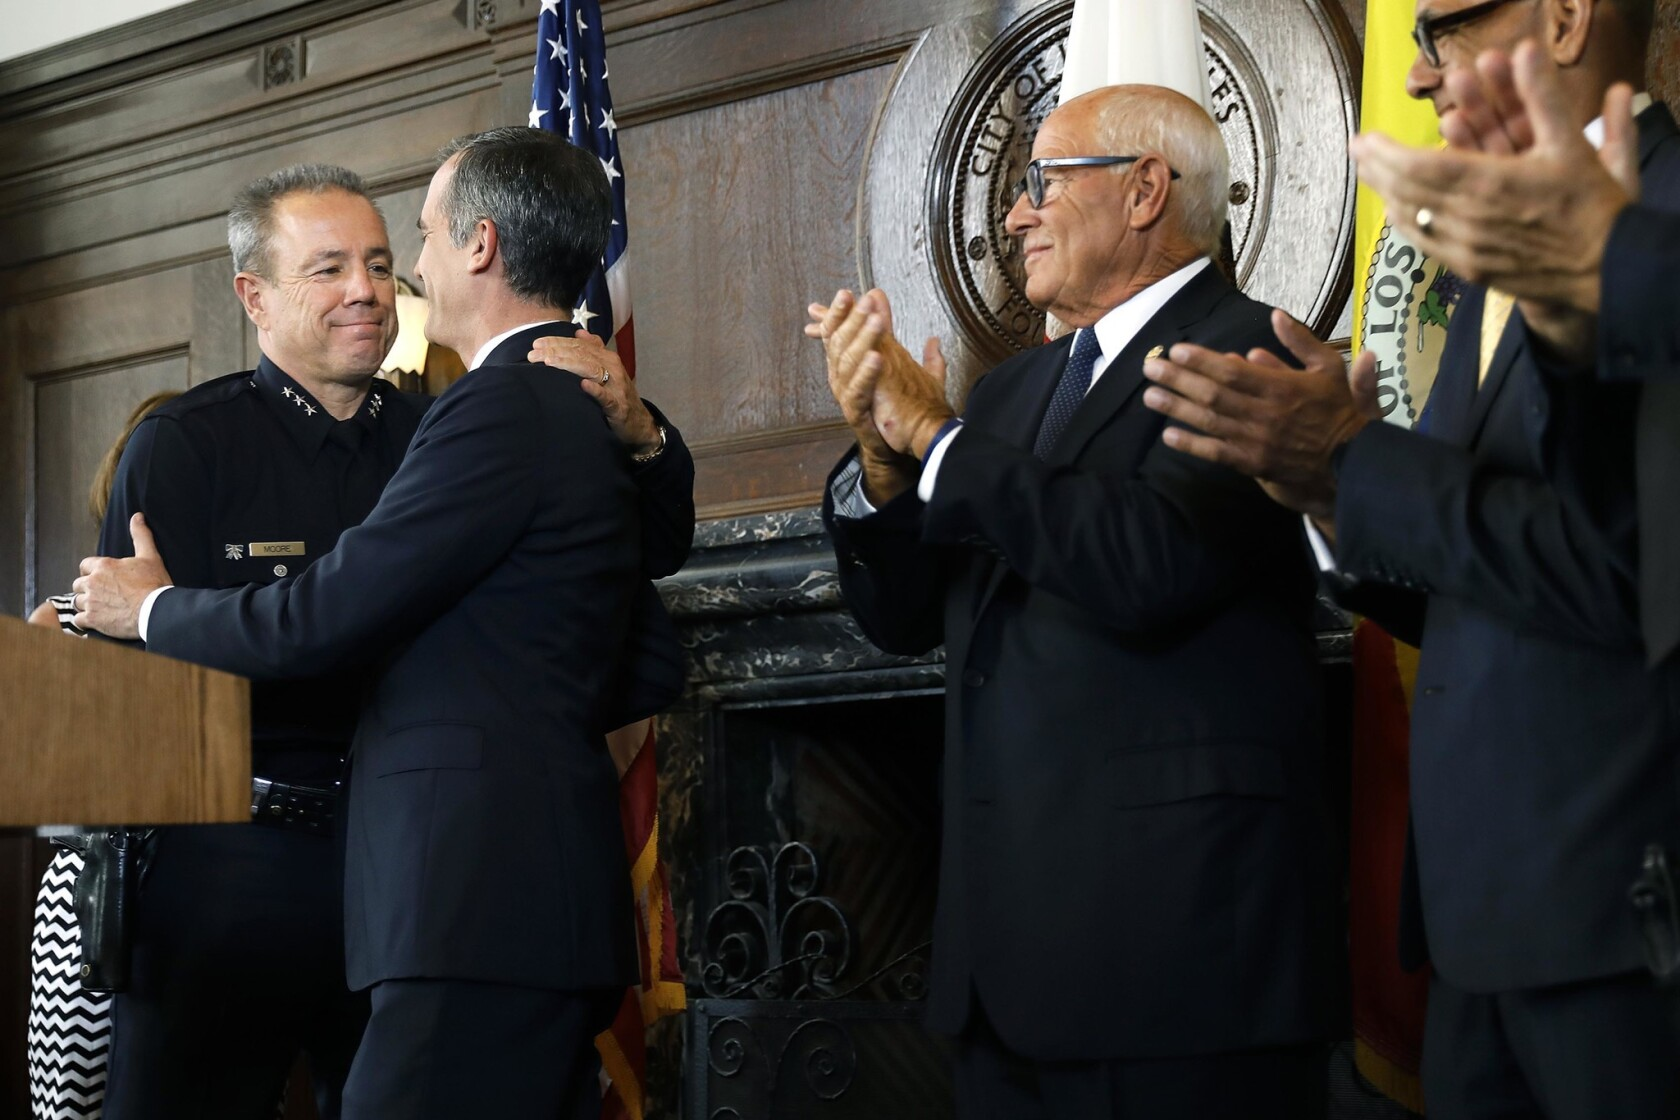 L A  mayor's pick for LAPD chief is 36-year veteran with deep